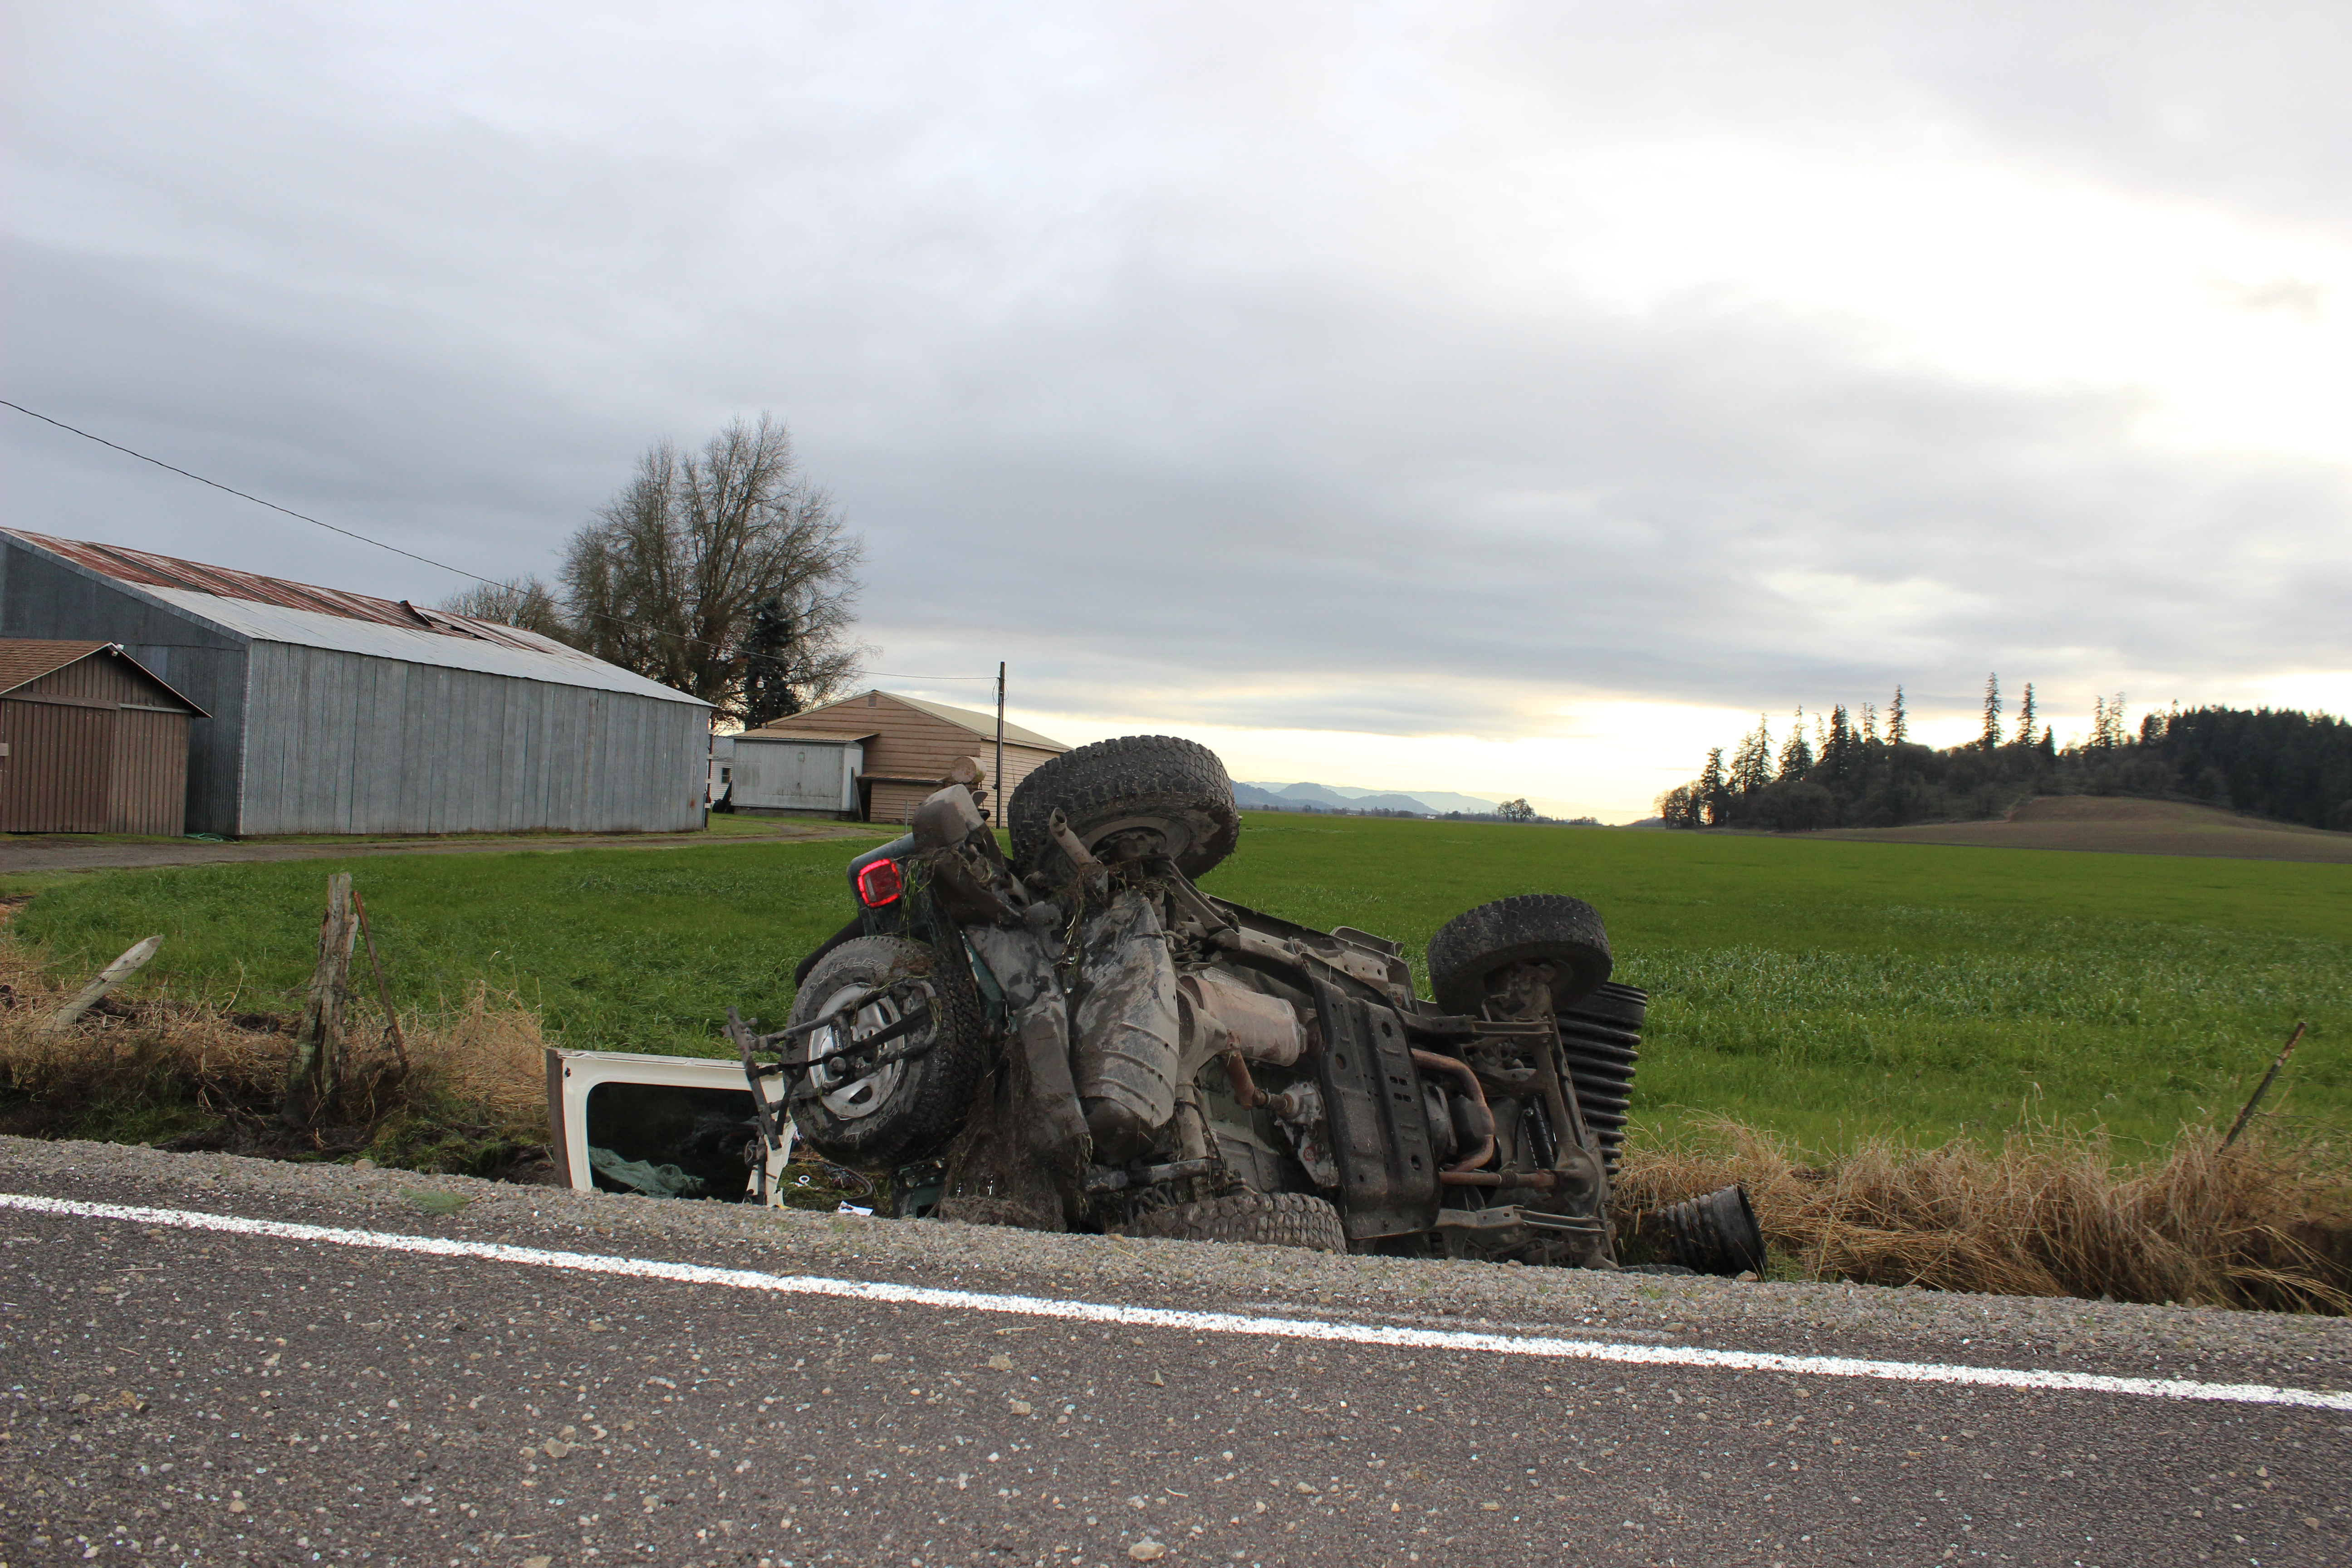 Update* Linn County Sheriff's Office Investigates Fatal Crash on